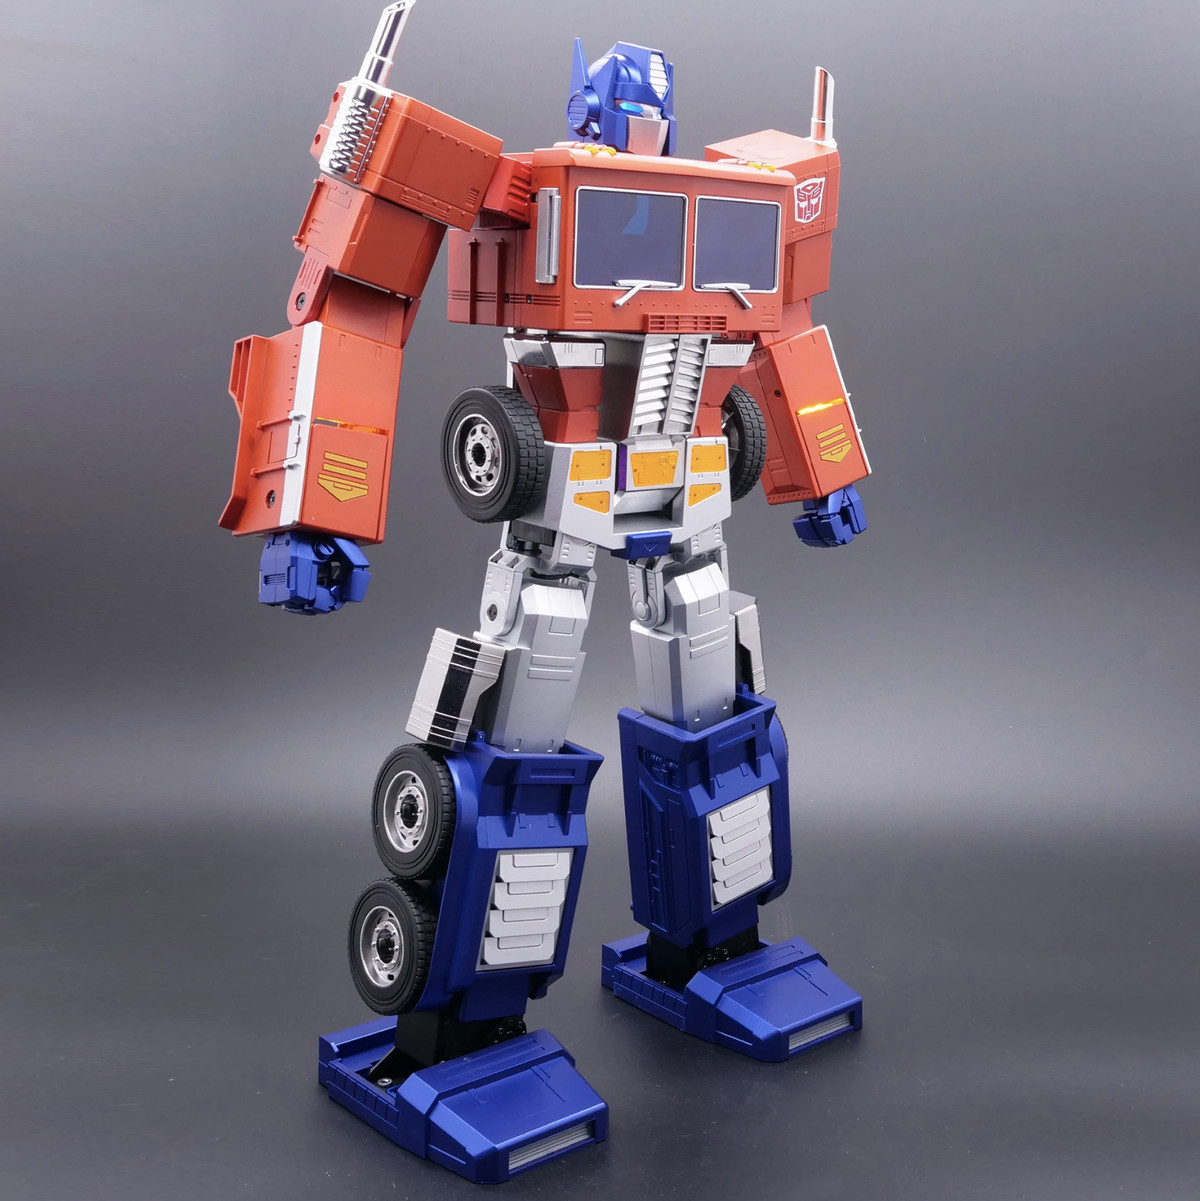 Hasbro's new $700 Optimus Prime toy can finally transform all on its own